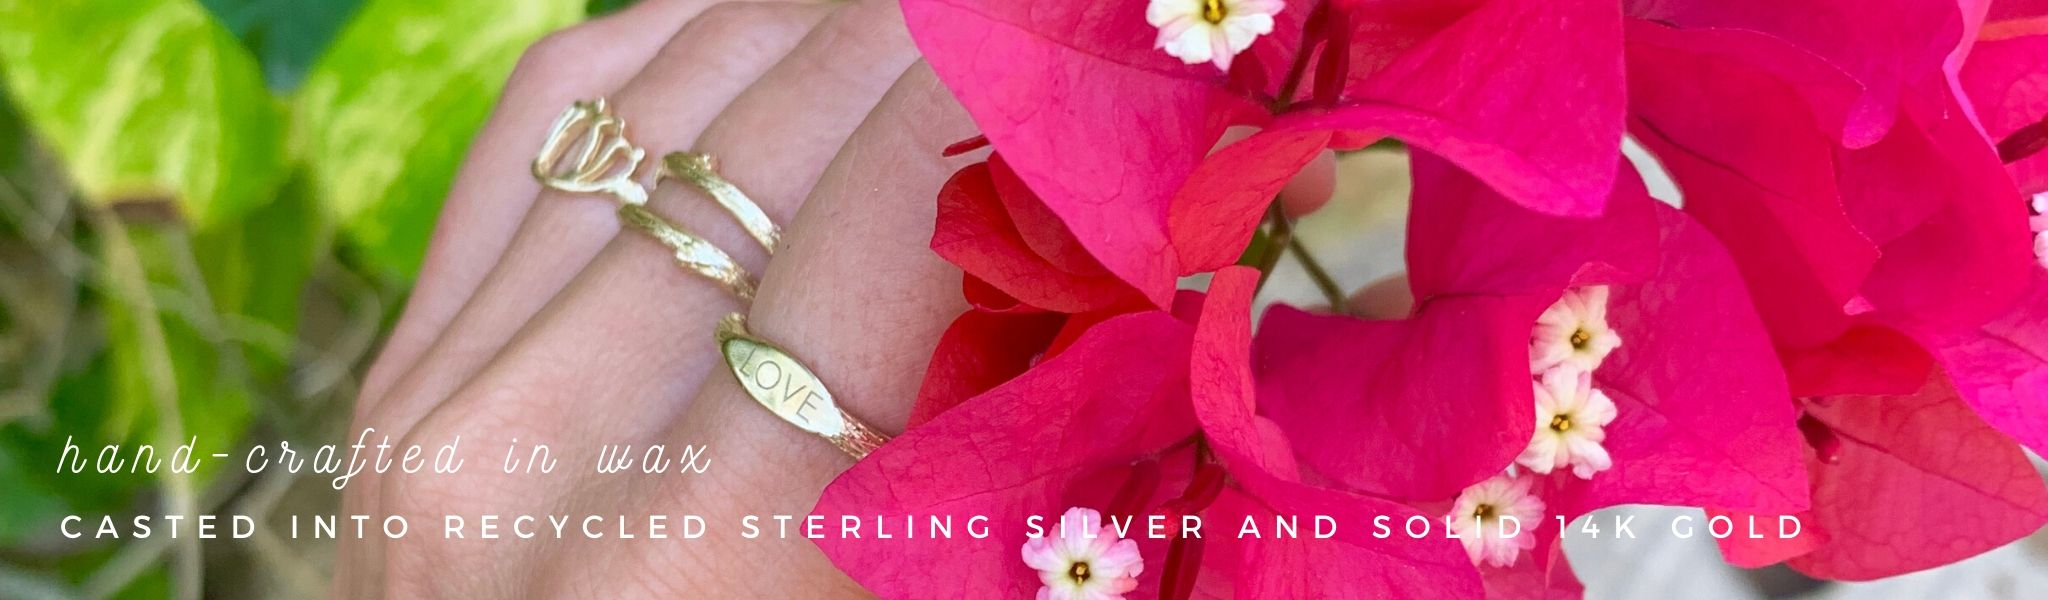 Personalized Gold Mantra Signet Ring Pink Flowers